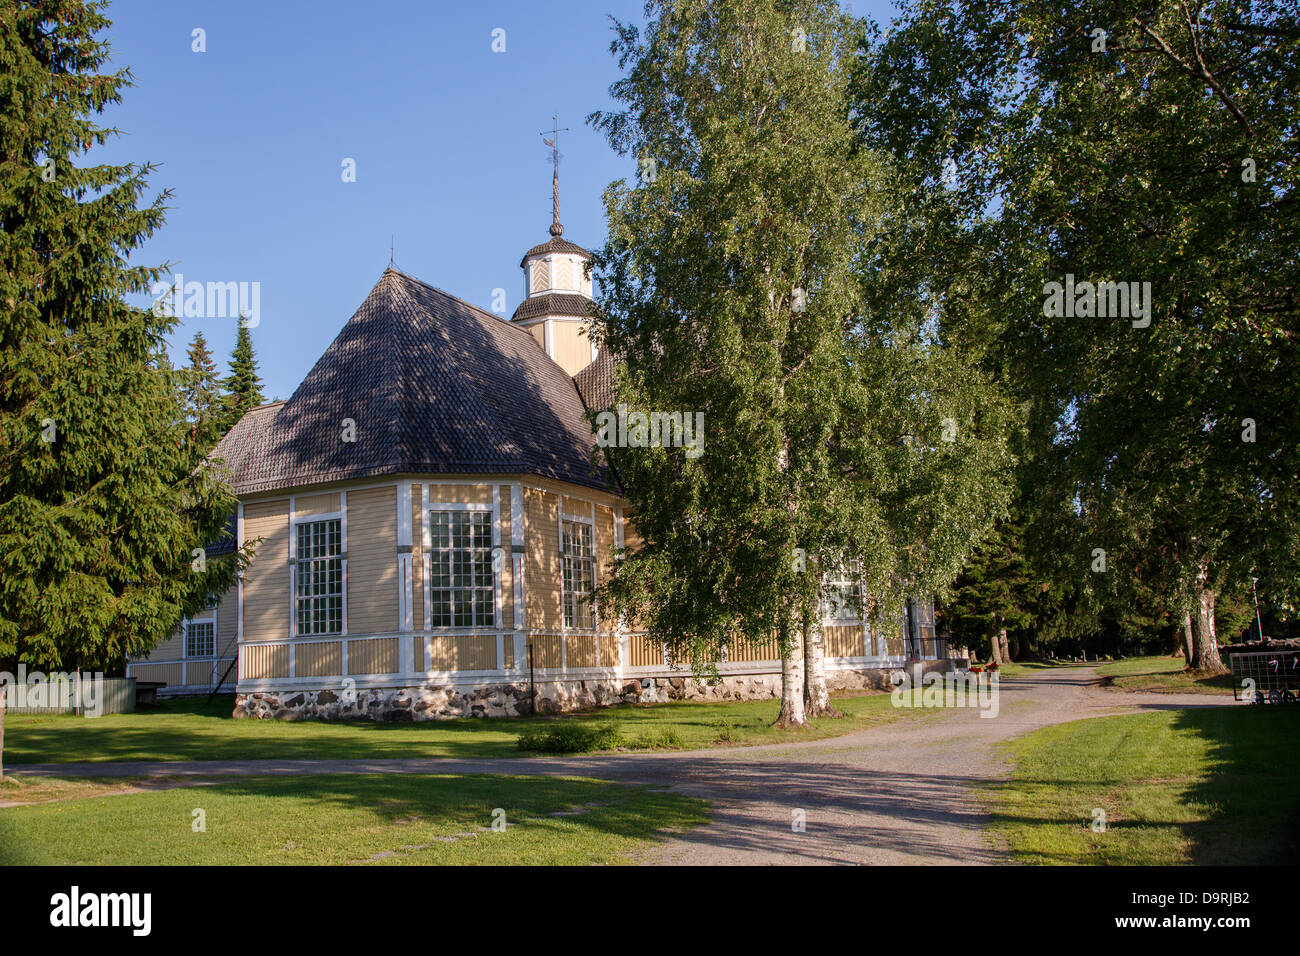 Lappajärvi Church was built of wood to the shape of cross in Ostrobothnia, Finland in 1765. - Stock Image